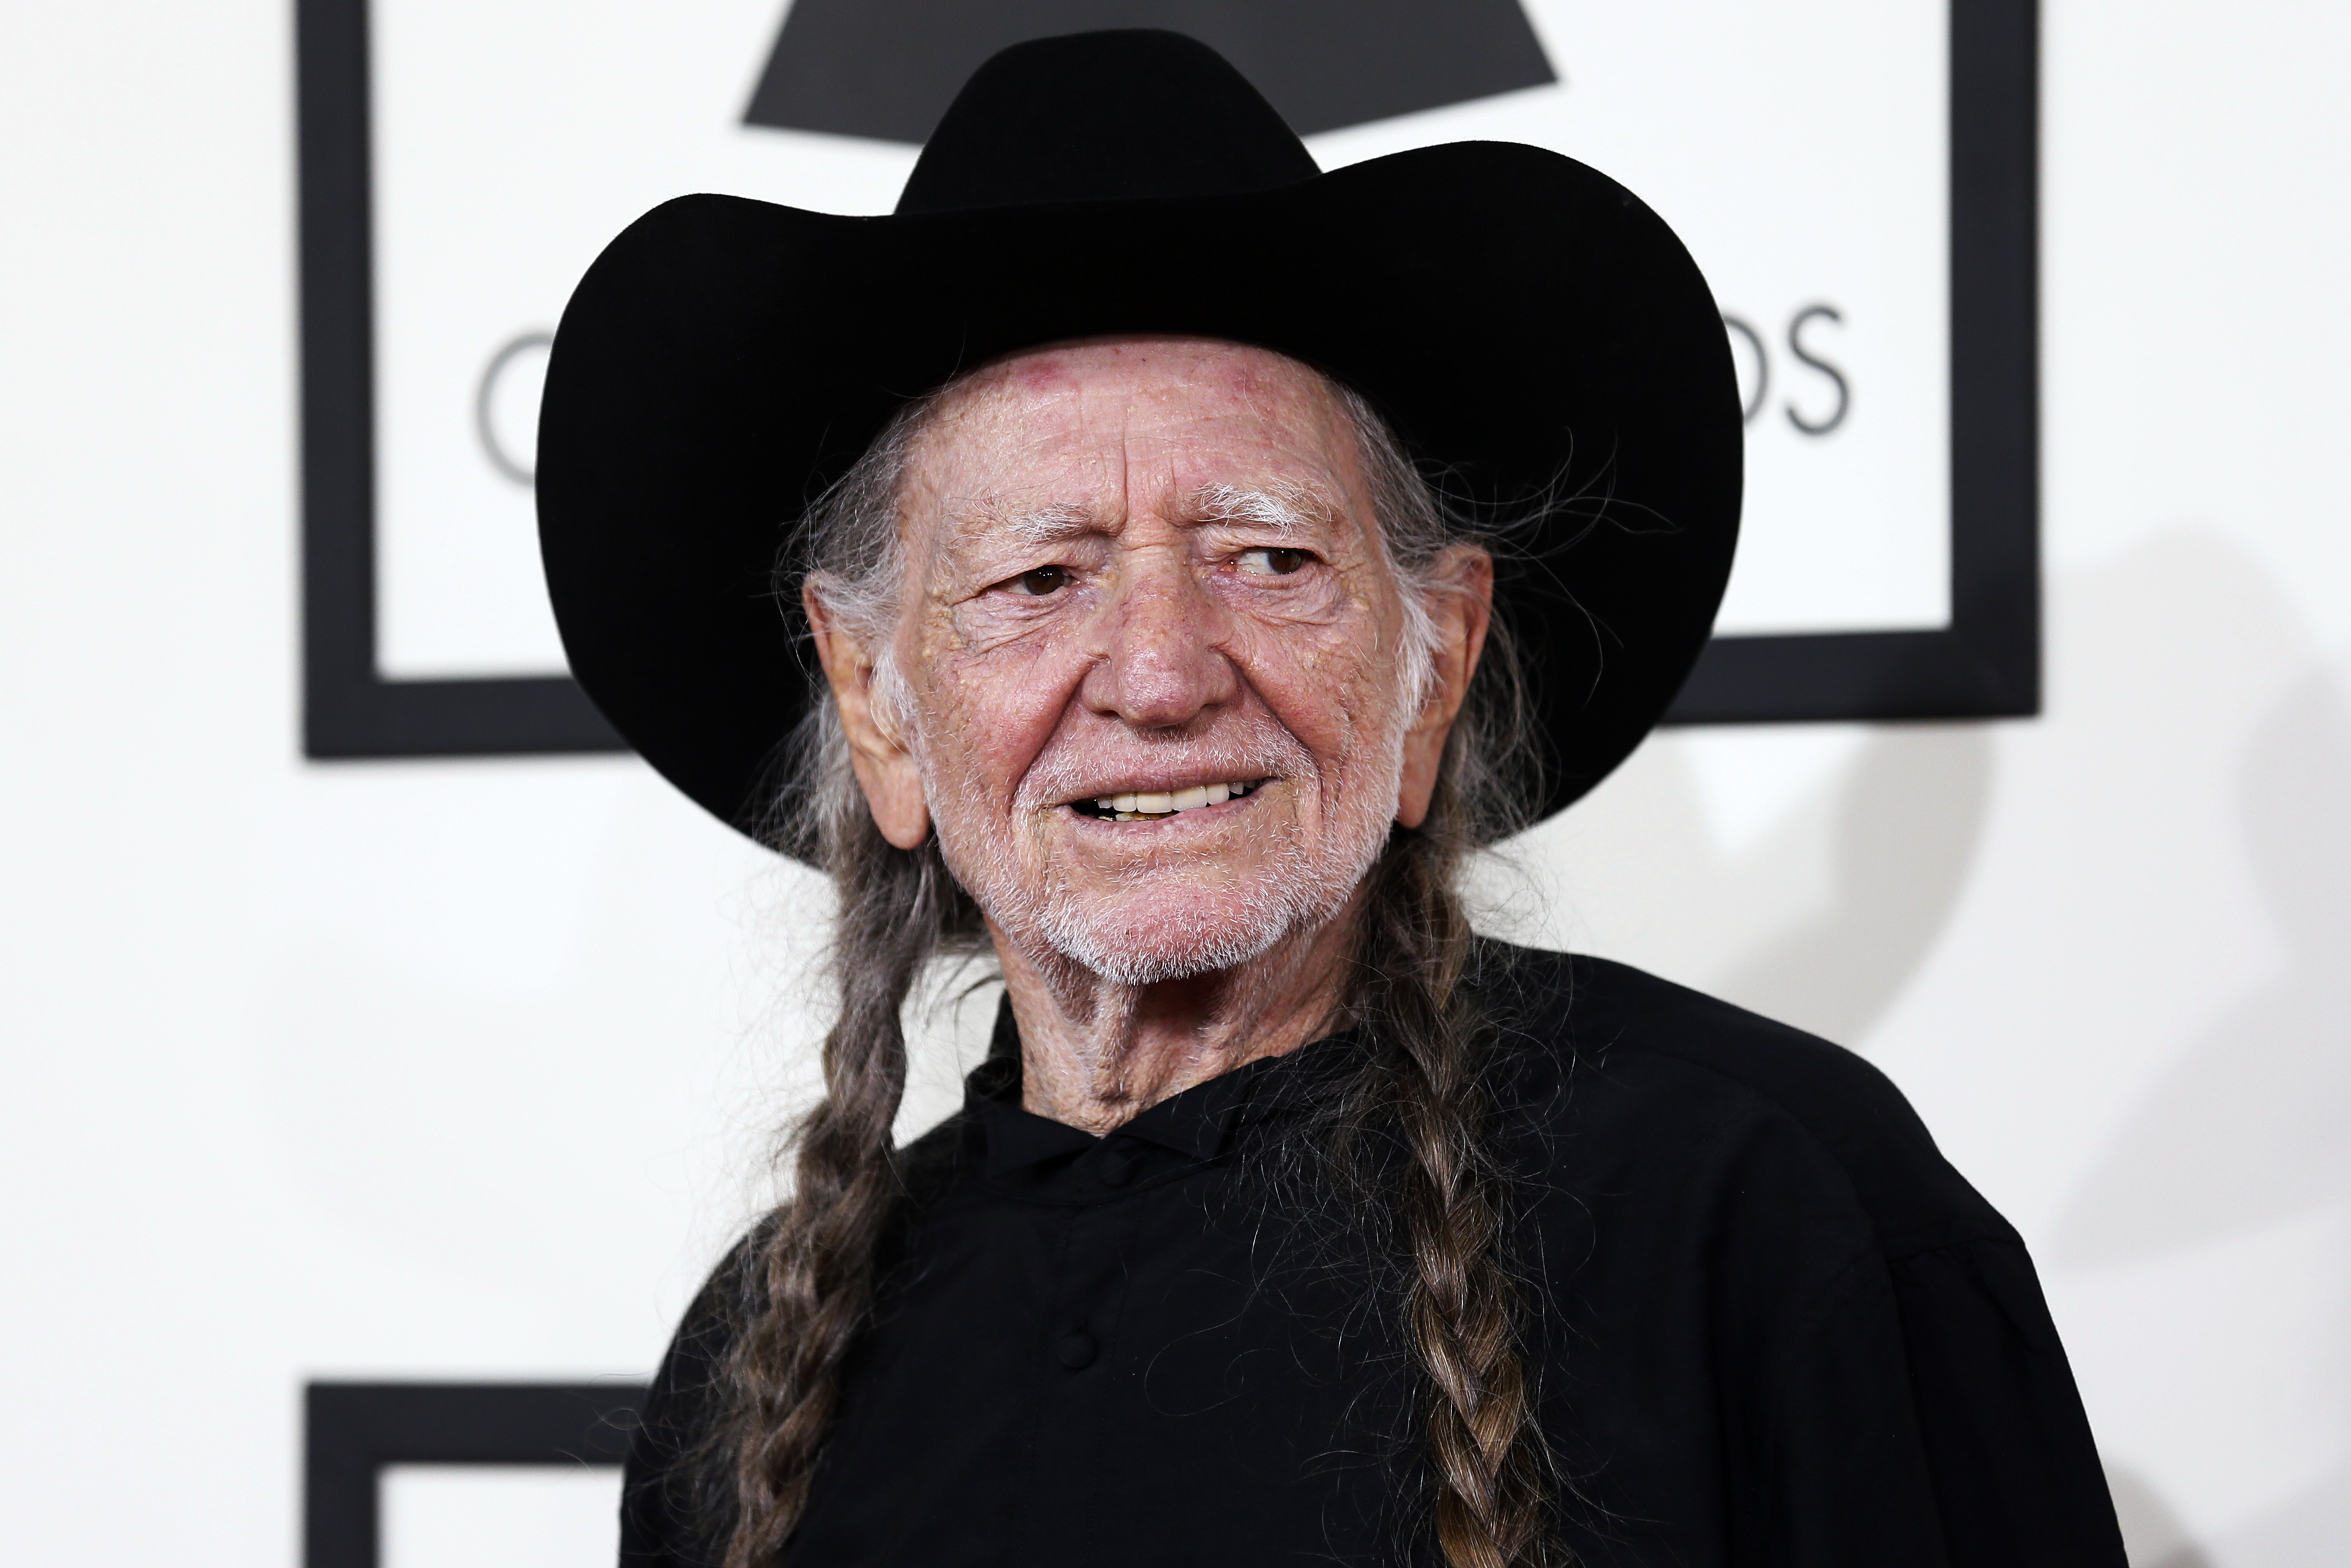 Musician Willie Nelson arrives at the 56th annual Grammy Awards in Los Angeles on Jan. 26, 2014